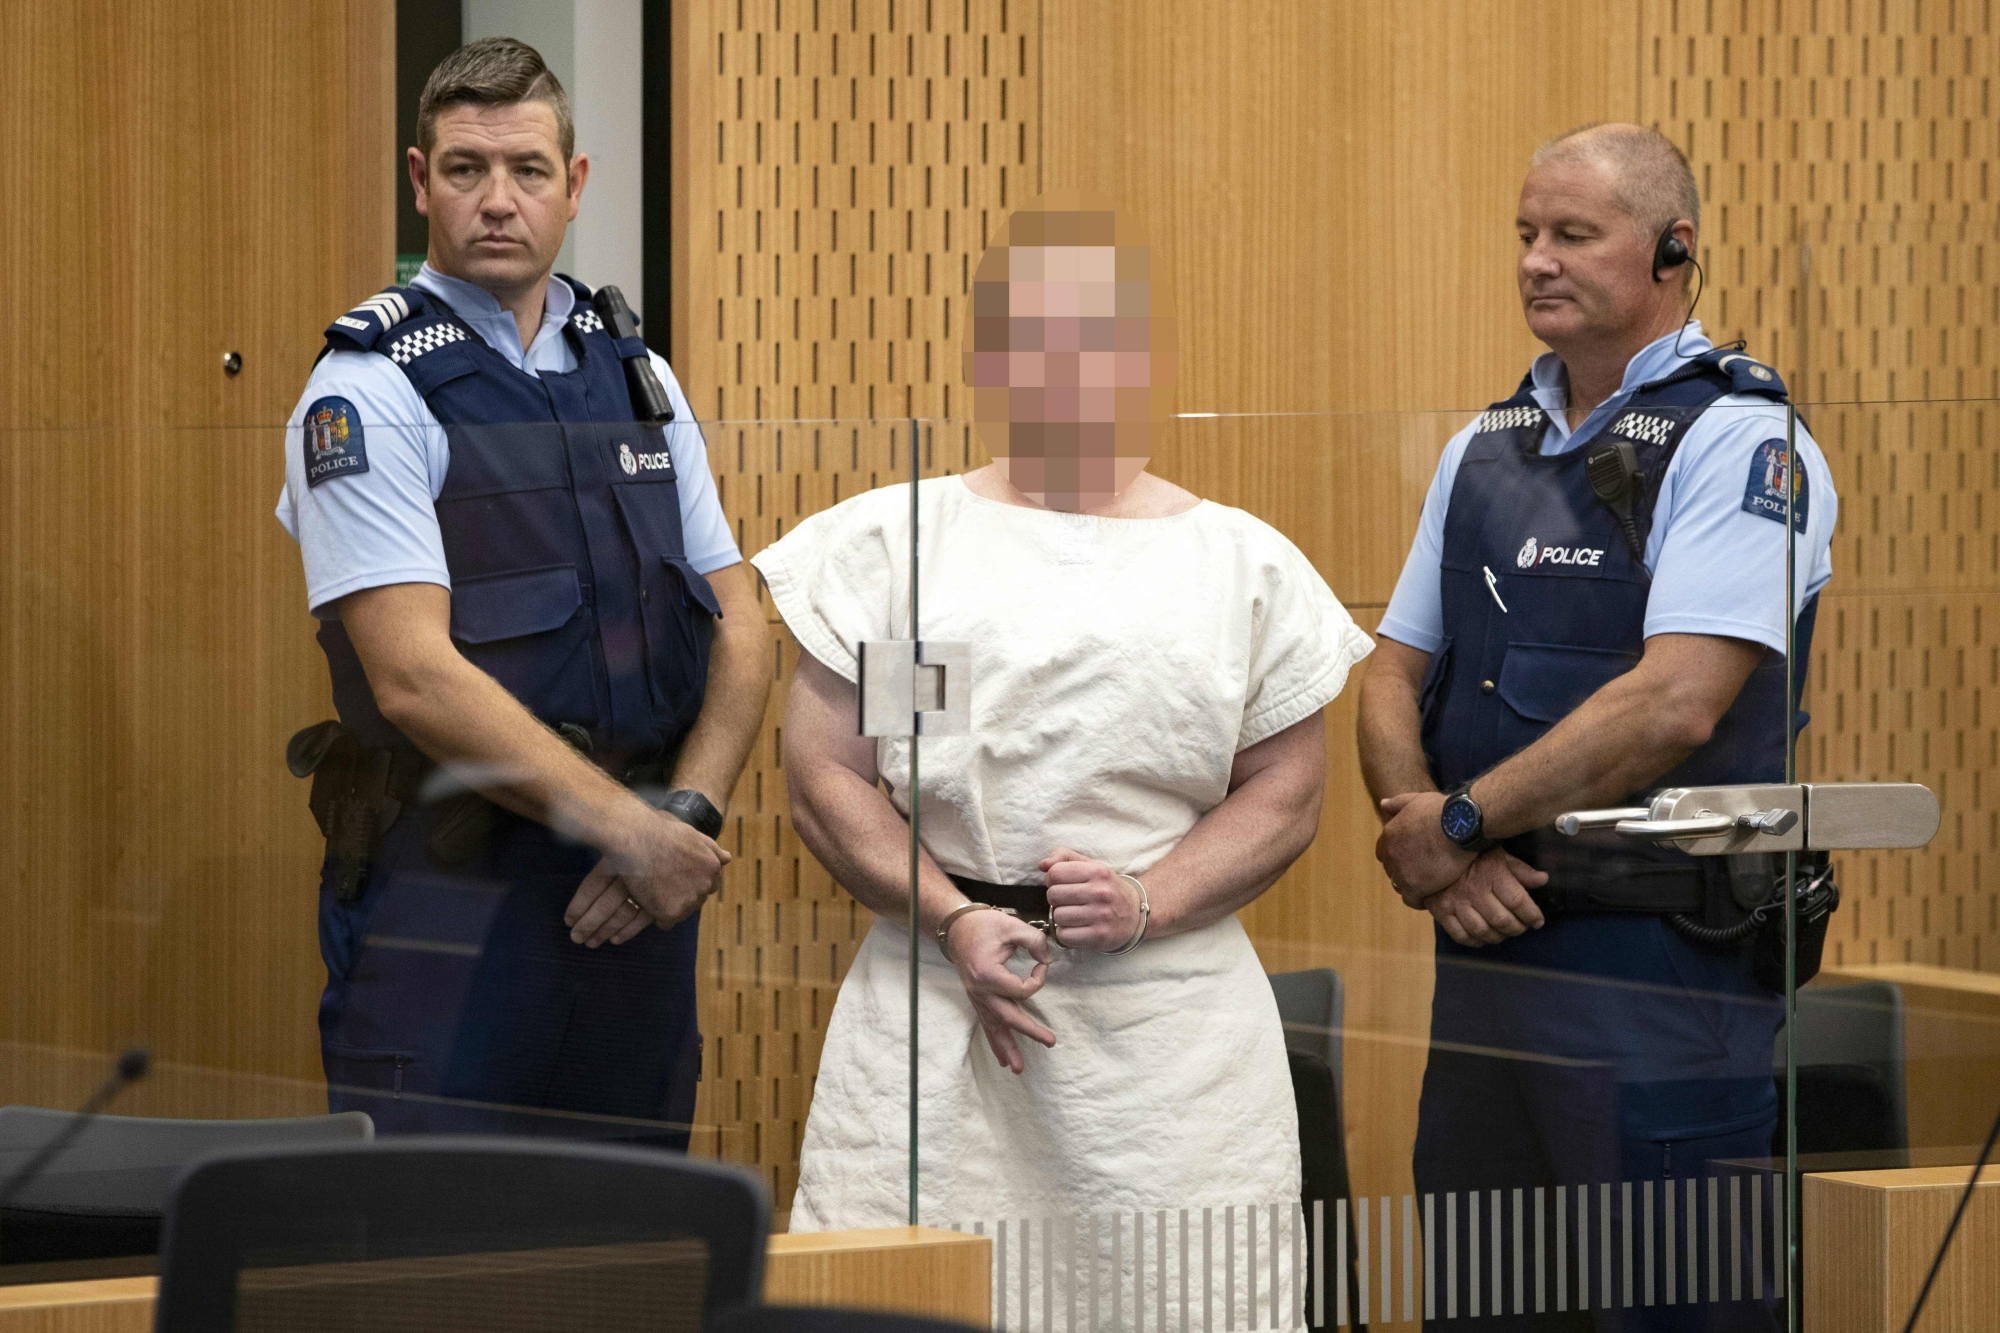 Australian Brenton Tarrant, charged in relation to the massacre at two mosques in Christchurch, makes a sign to the camera during his appearance in the Christchurch District Court on Saturday. | AFP-JIJI